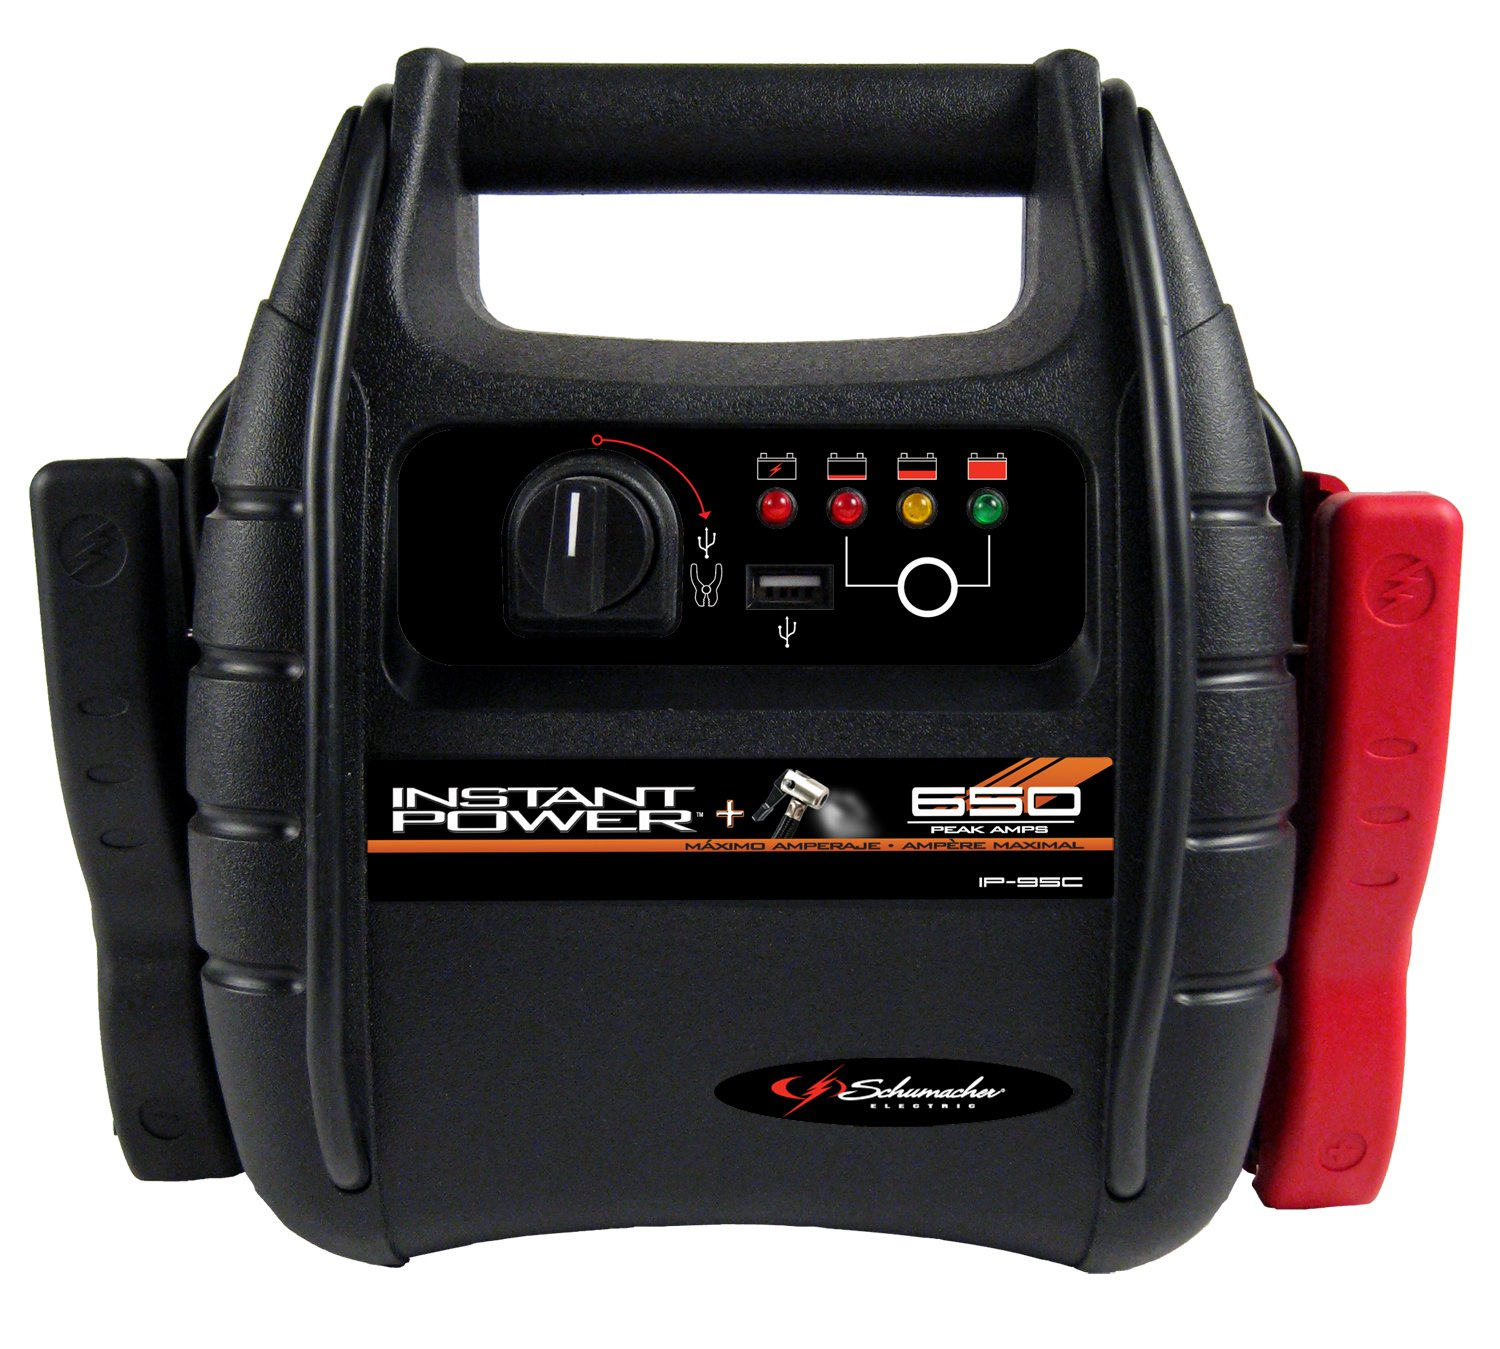 Schumacher IP-95C 9-Ah Jump Starter and Air Compressor